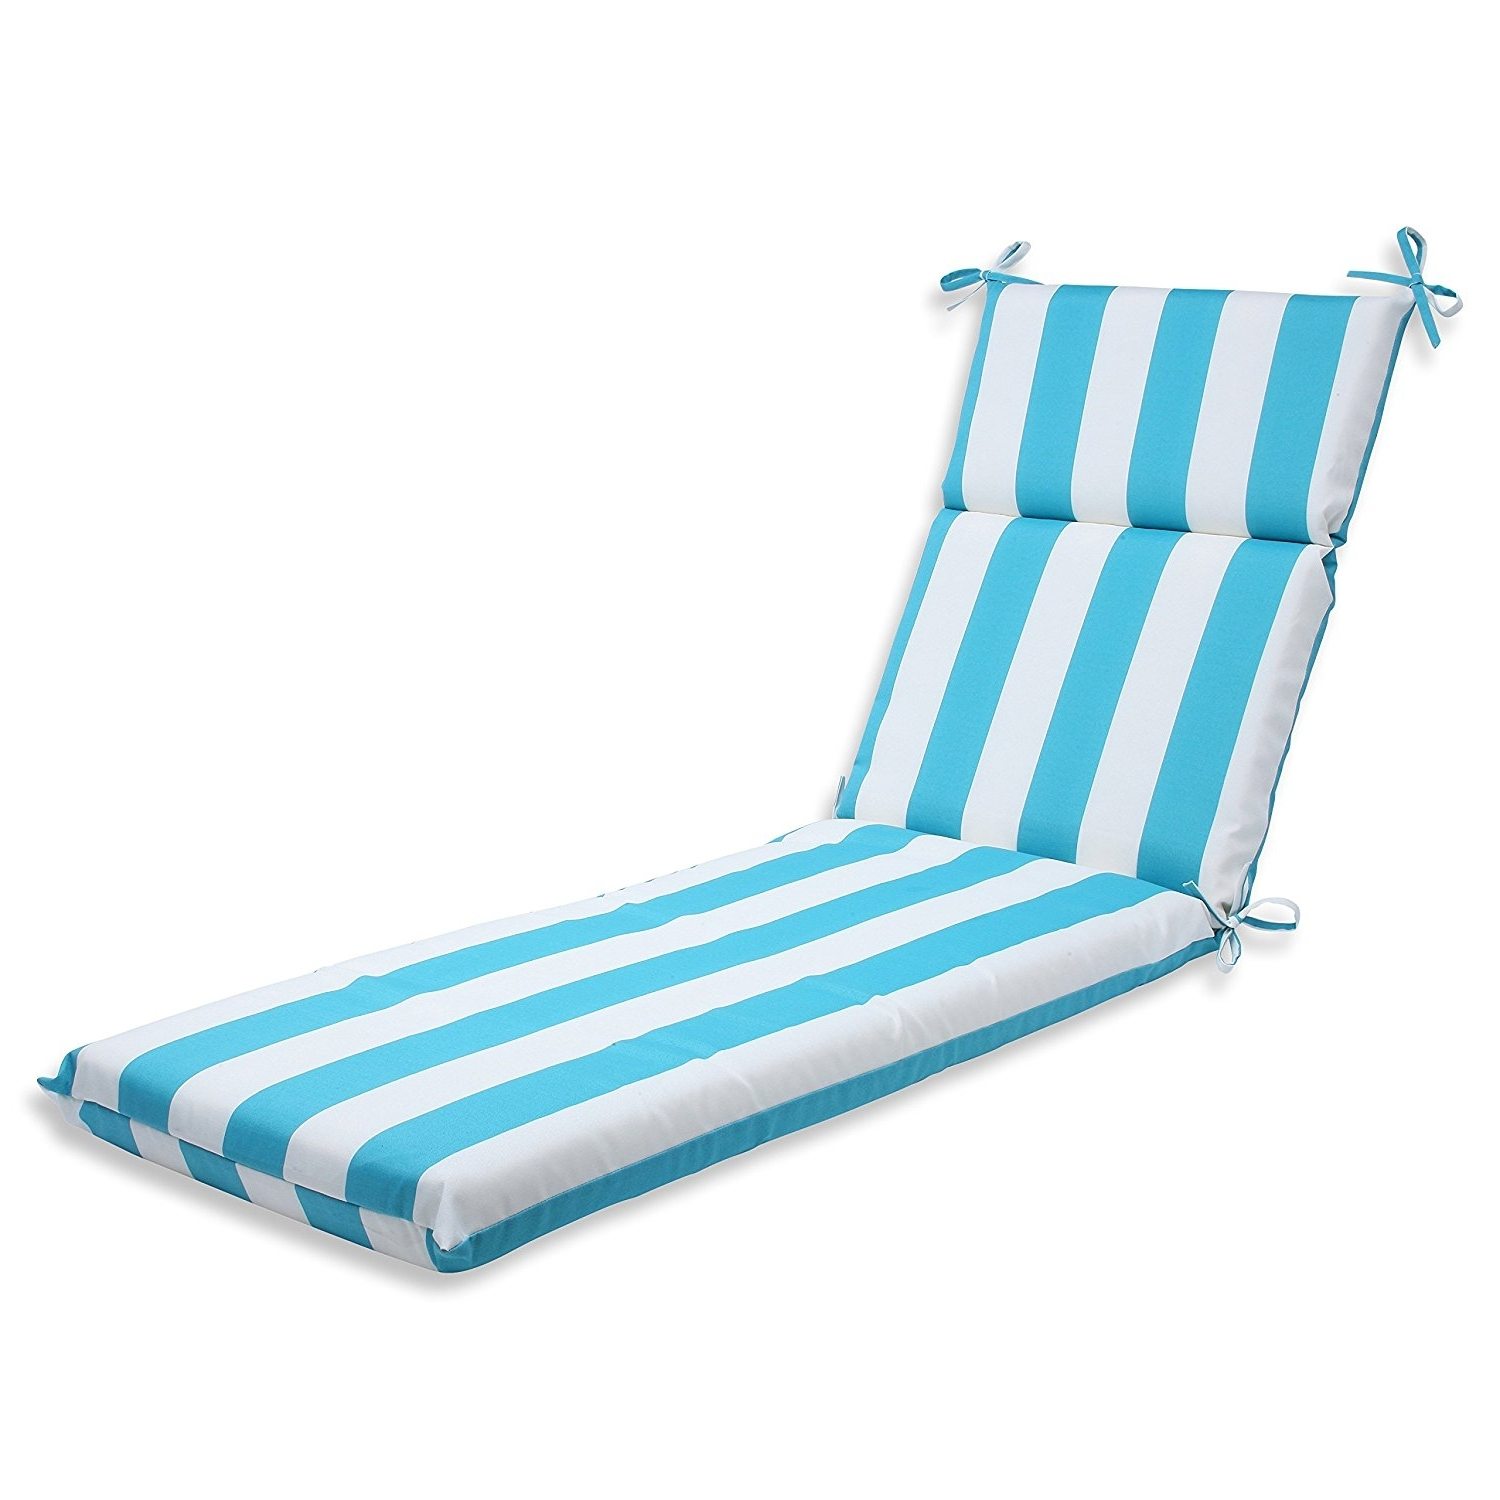 Chaise Lounge Chair Outdoor Cushions Regarding Latest Amazon: Pillow Perfect Outdoor Cabana Stripe Chaise Lounge (View 14 of 15)